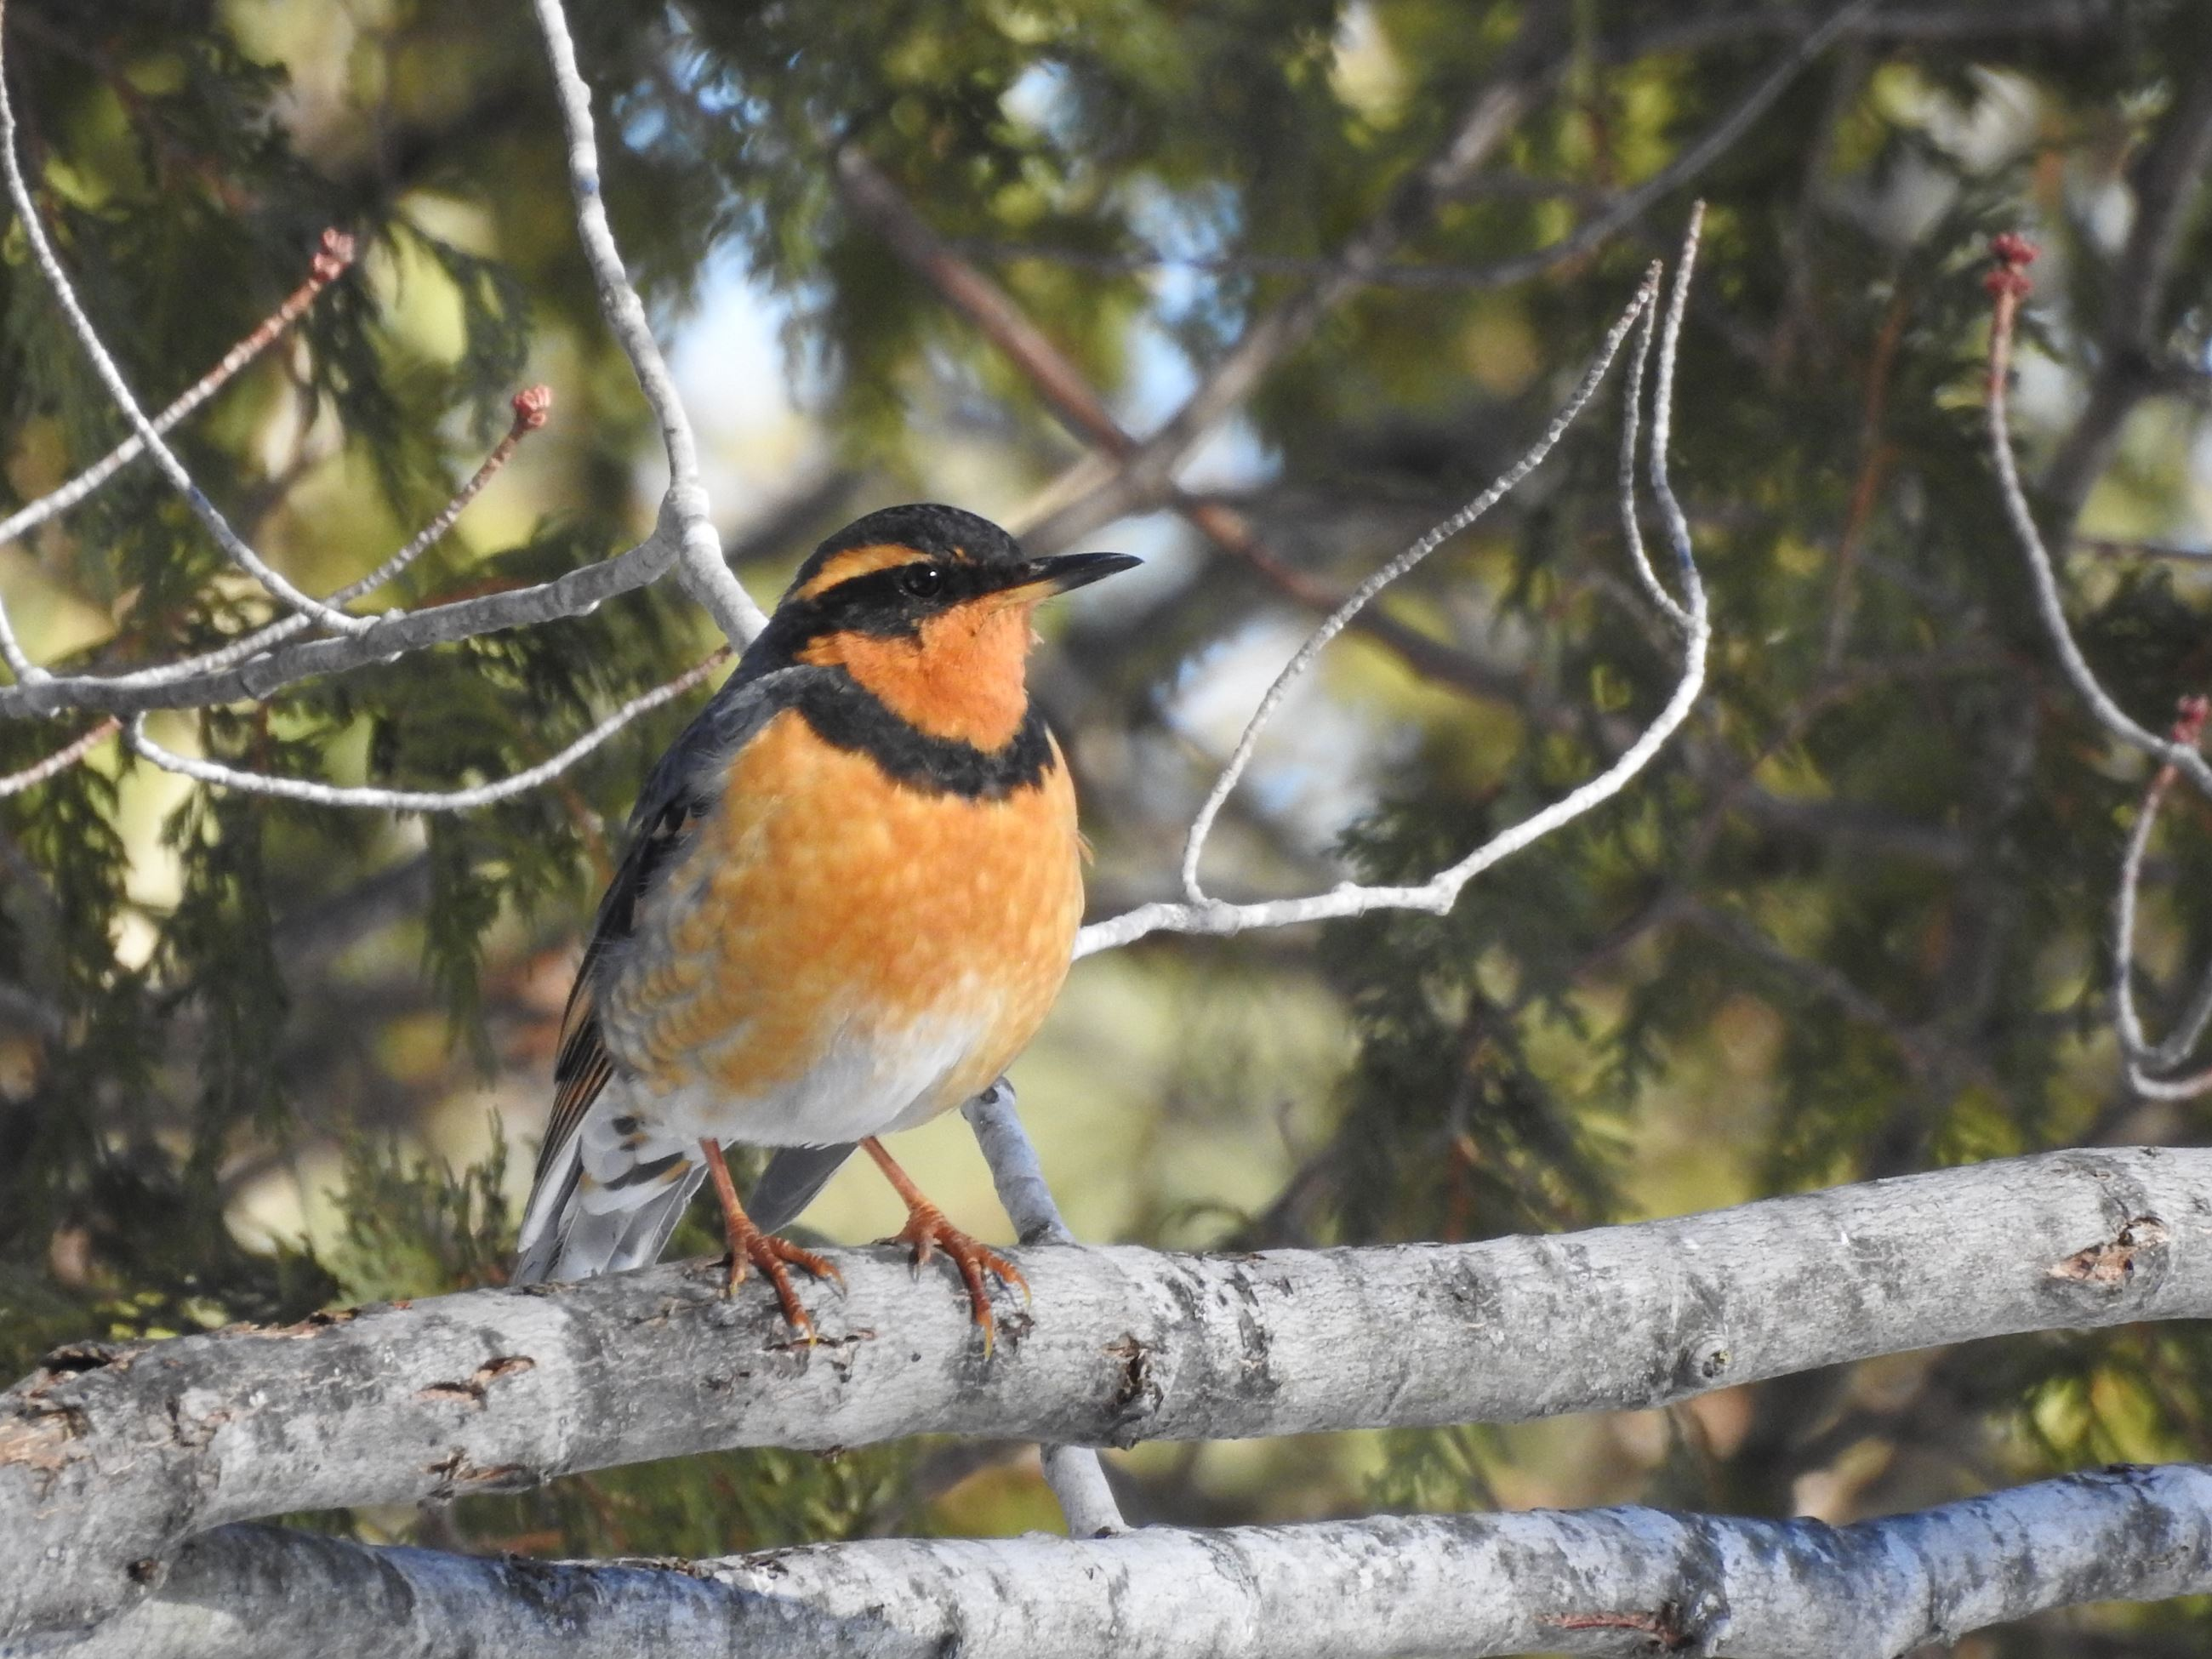 An orange and black Varied Thrush bird